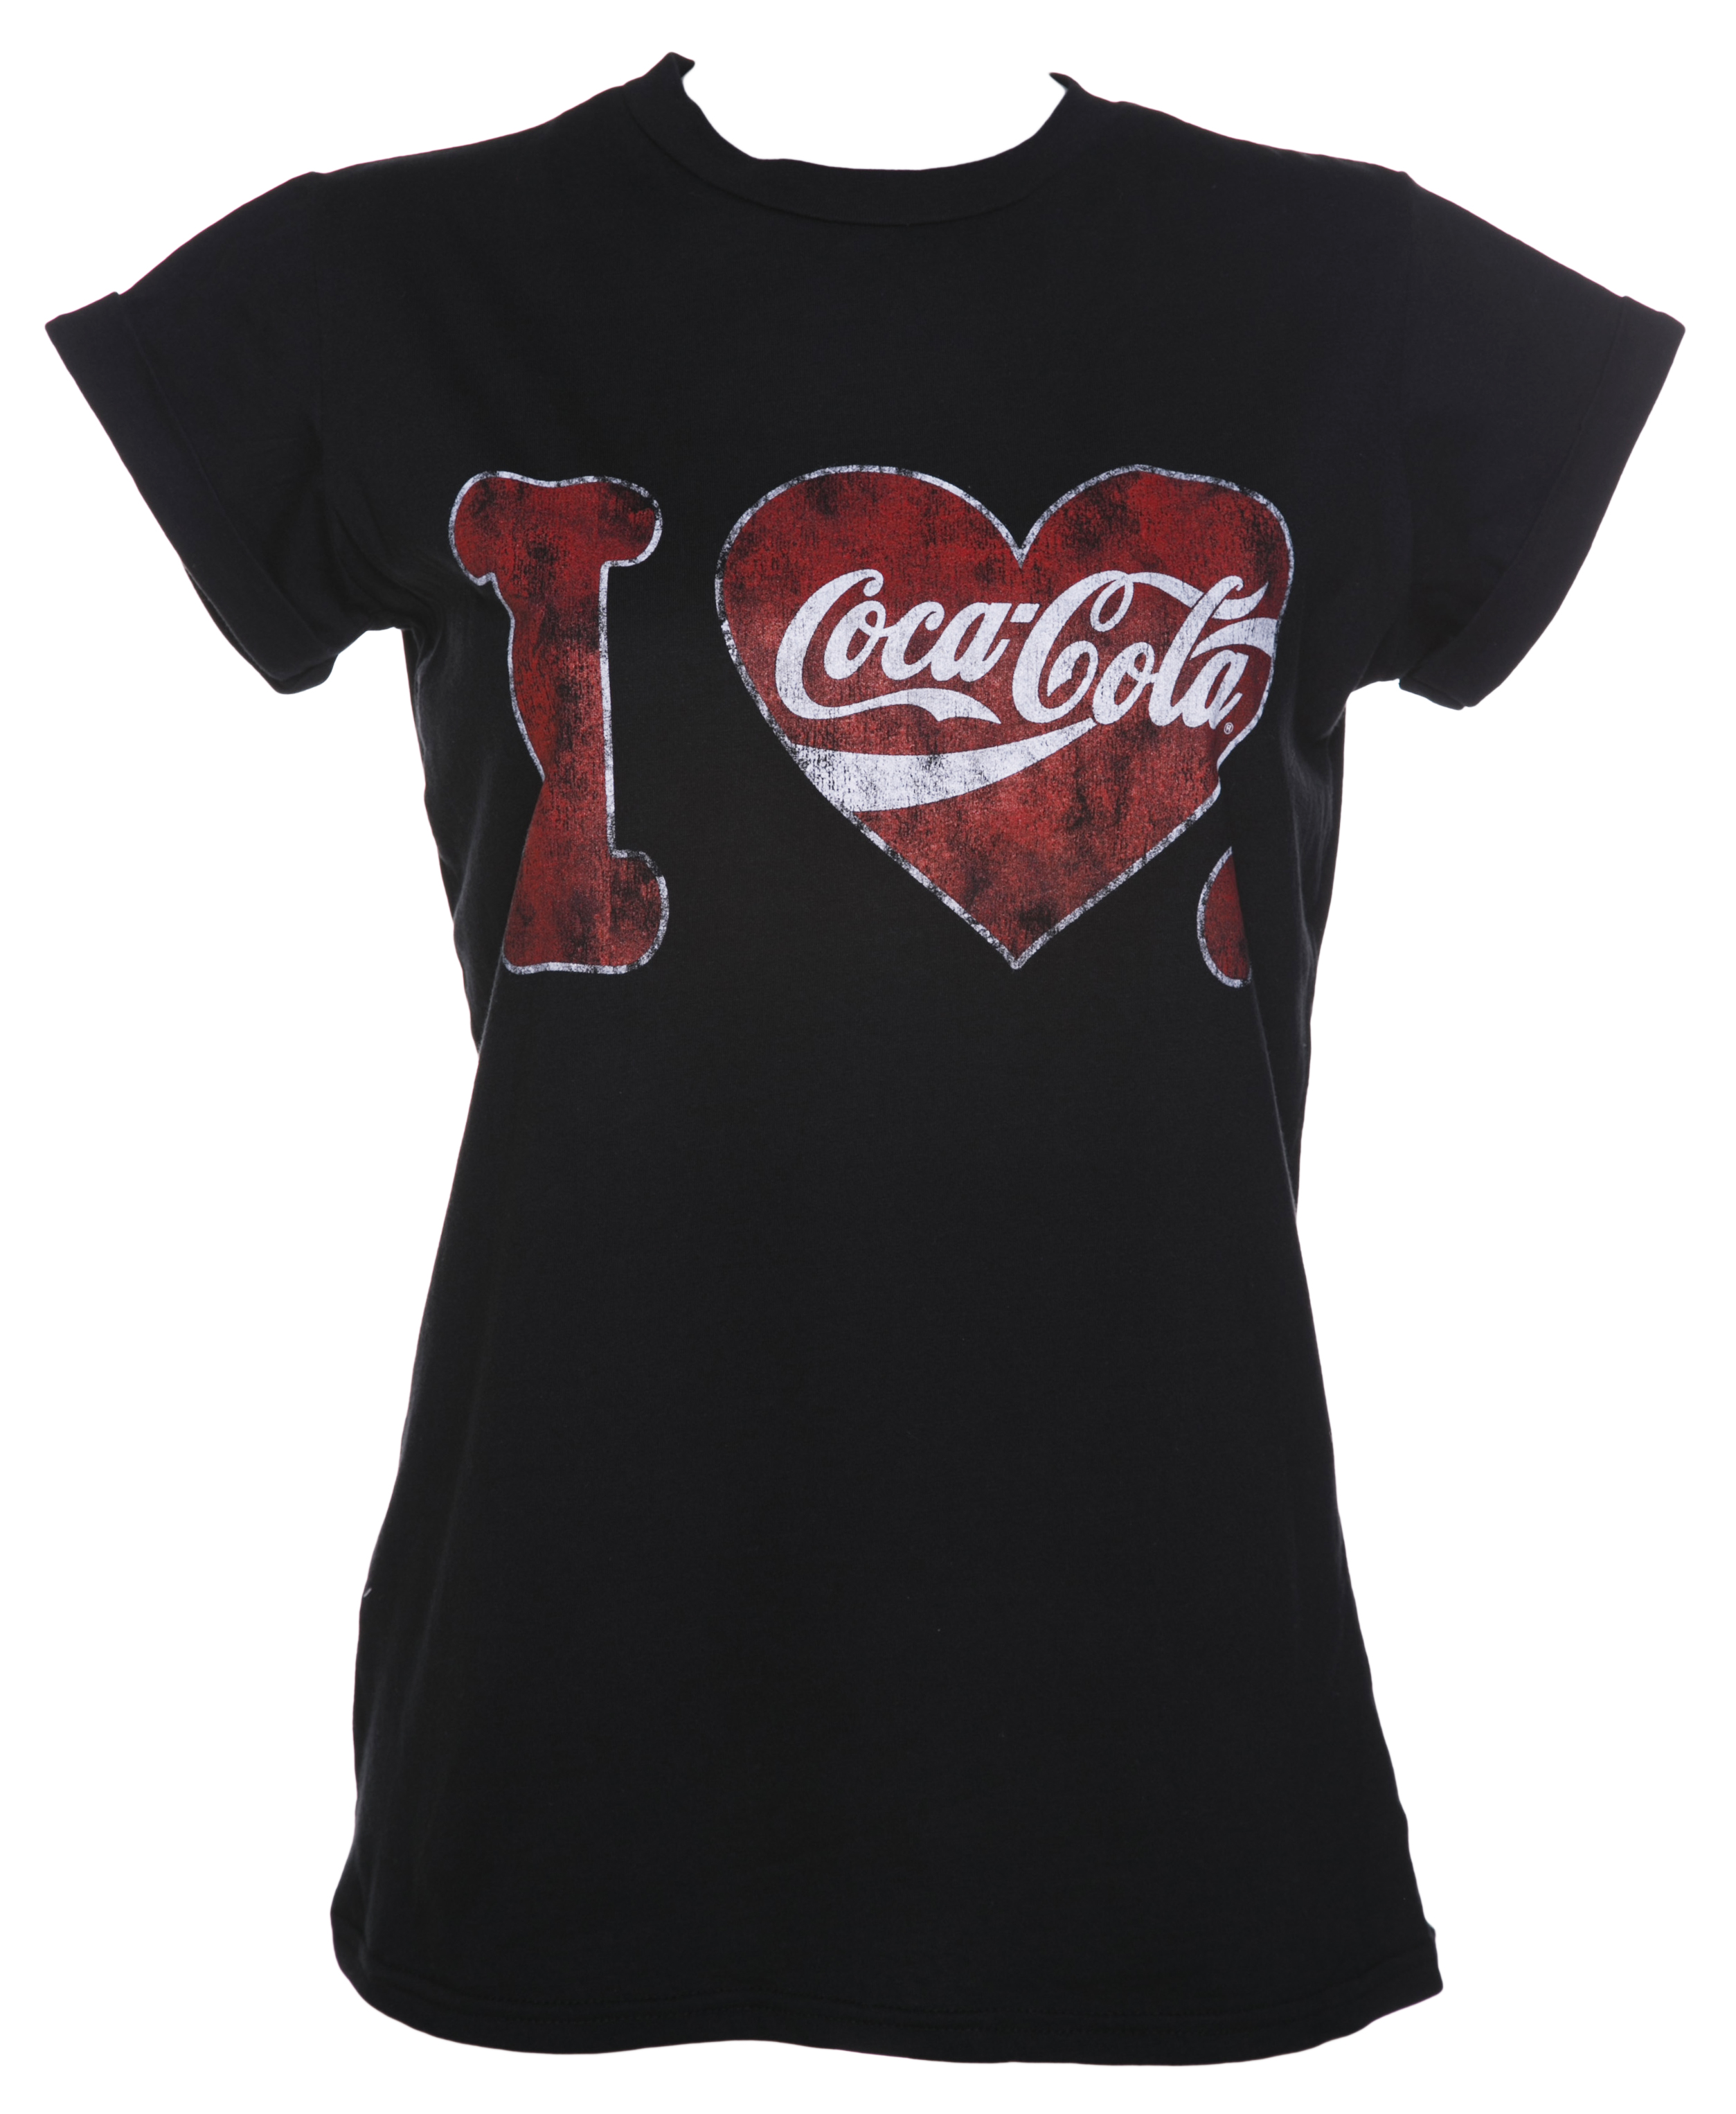 women 39 s i heart coca cola boyfriend t shirt. Black Bedroom Furniture Sets. Home Design Ideas